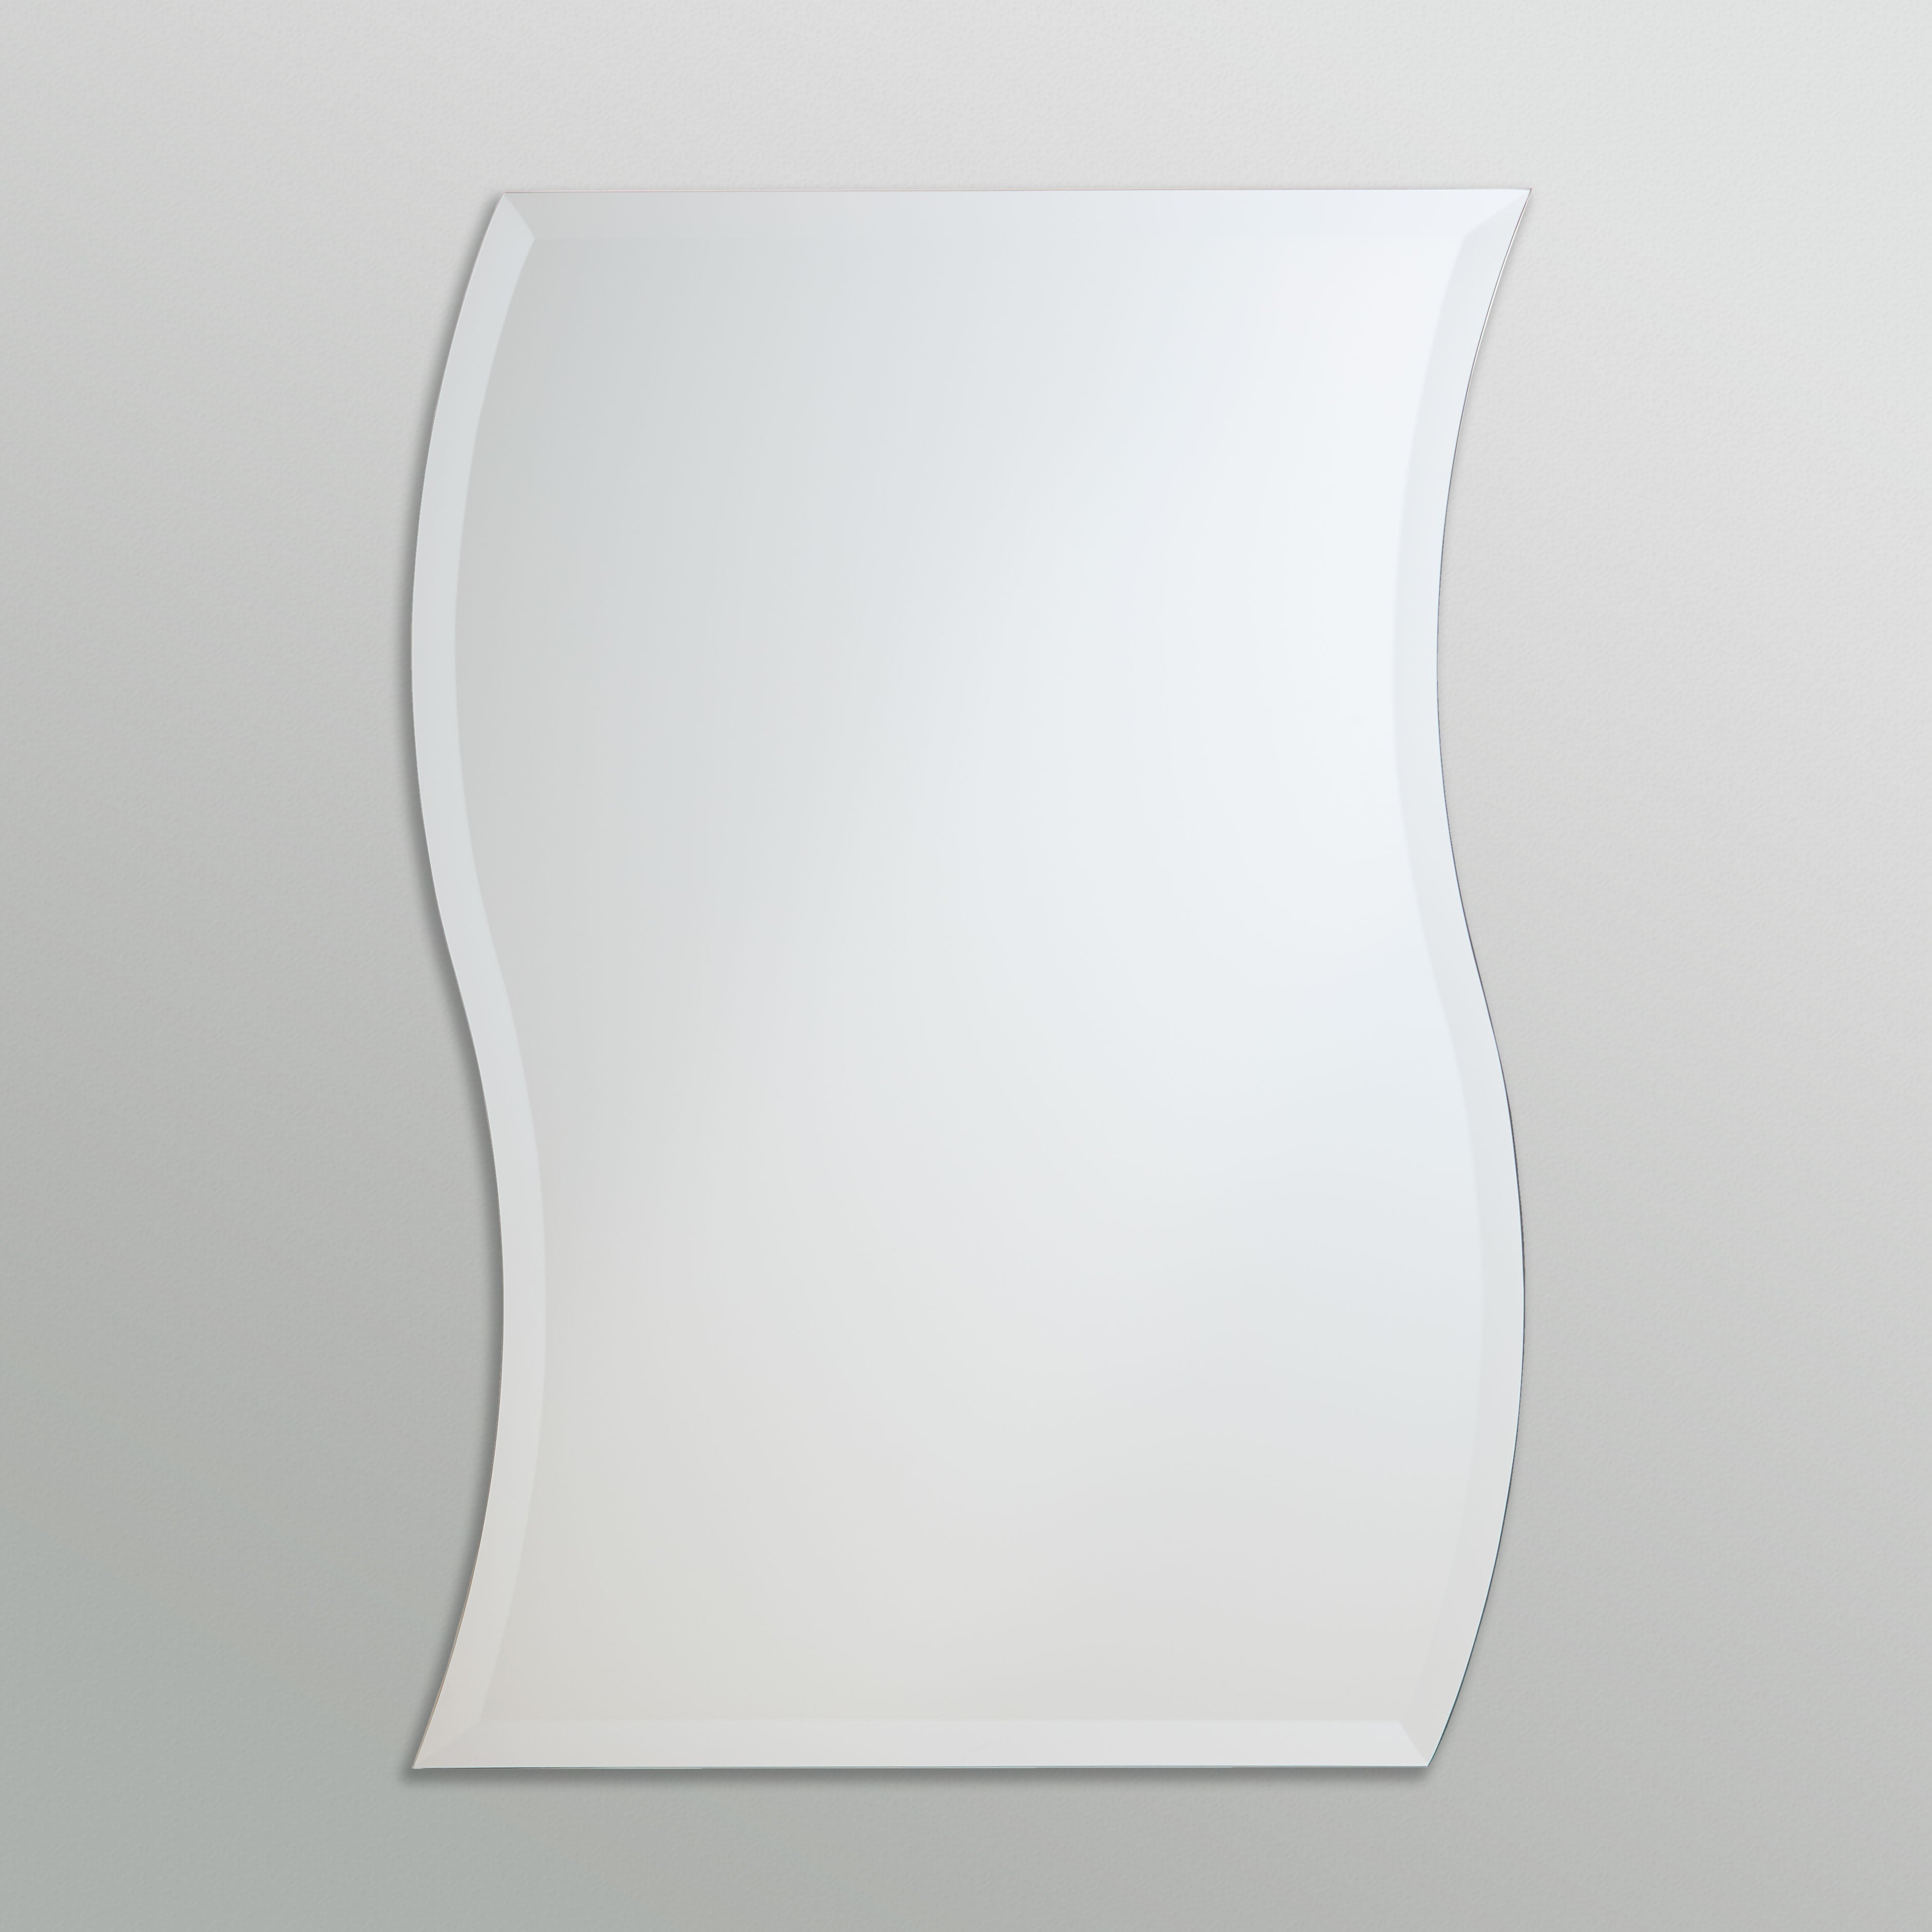 Better Bevel Frameless Beveled Swerve Wavy Mirror on grey wall